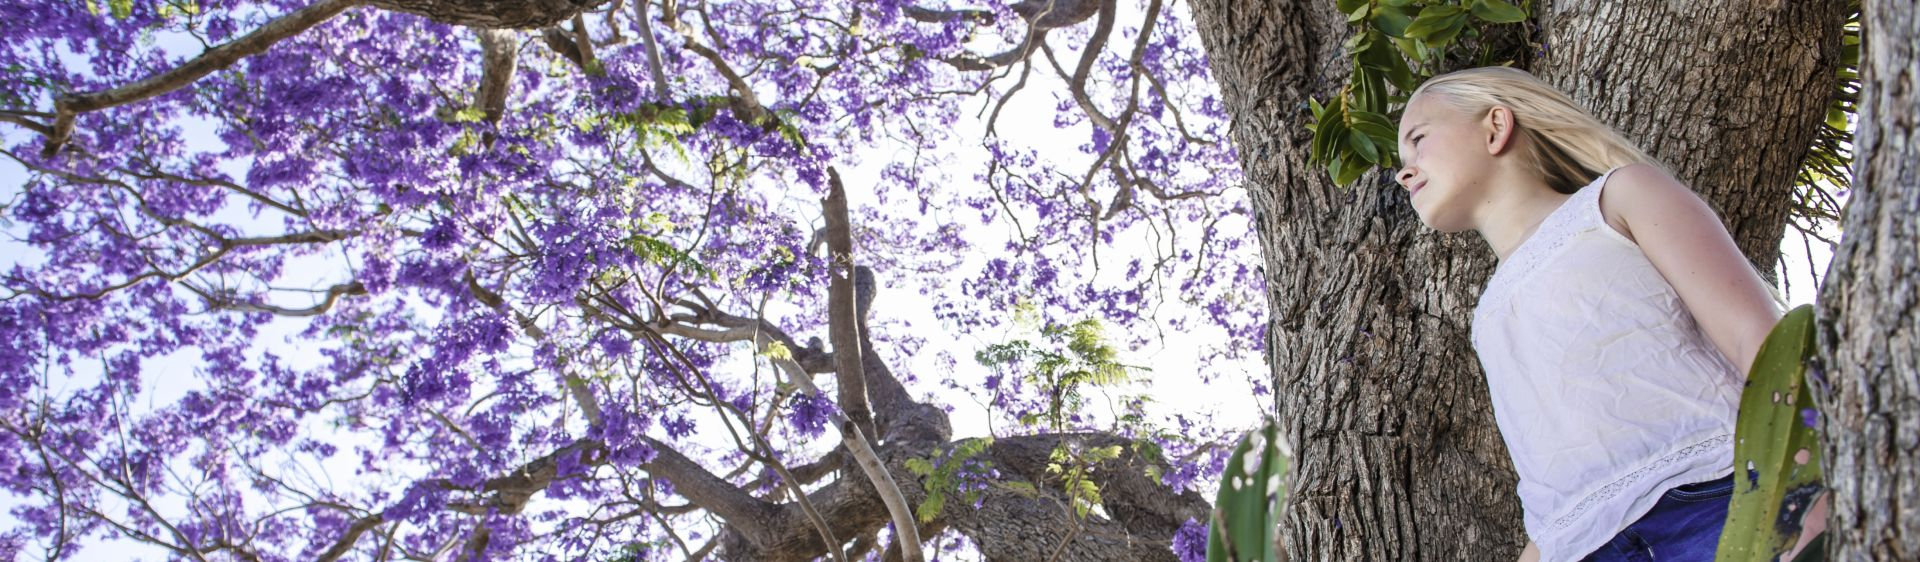 Girl admiring a Jacaranda tree's purple spring bloom, Grafton